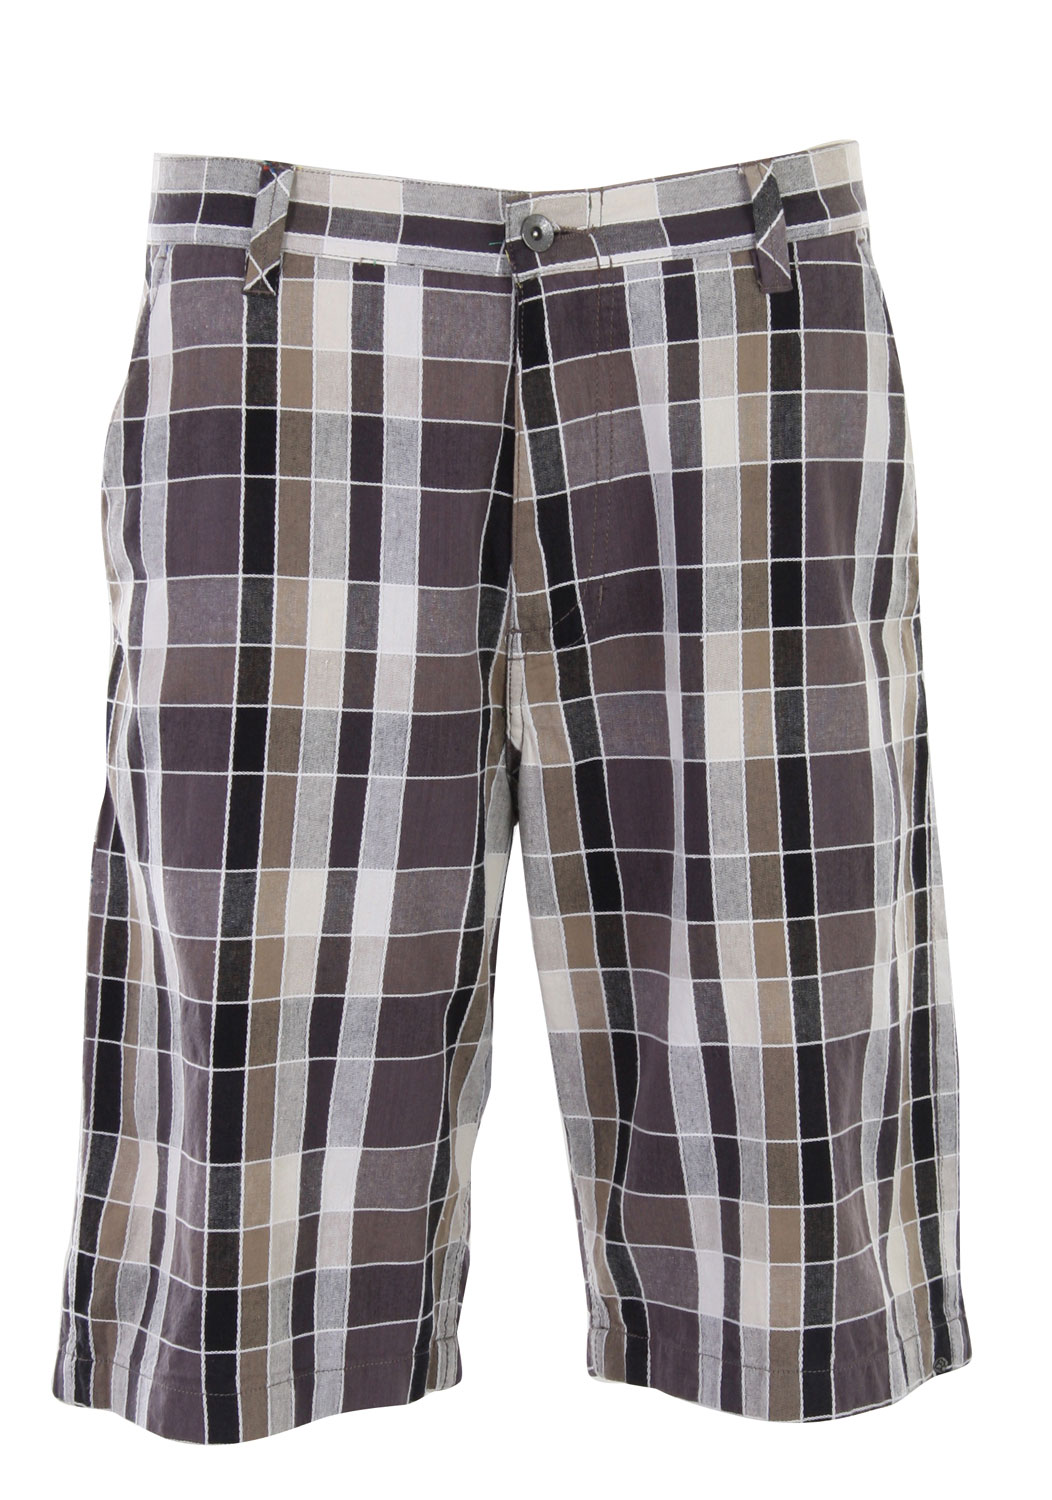 Surf Sport these shorts on a nice summer day out. The Reef Bold Seagull 2 Shorts is made with 100% cotton offering true comfort and quality. It's soft to the touch, can be worn all day long with comfort and ease. Its plaid design adds a trendy touch to today's style. It's a regular fit featuring two front and two back pockets. Feel comfortable and confident rocking it out with the Reef Bold Seagull 2 Shorts.Key Features of the Reef Bold Seagull 2 Shorts: Allover yarn-dyed dobby check Regular fit Button closure with zip fly Front hand pockets Two back pockets Embroidered logo under back right welt pocket Printed pocketing Small media pocket at ride leg Logo detail at right hemline Outseam: 23 Inseam: 11 100% cotton - $31.95